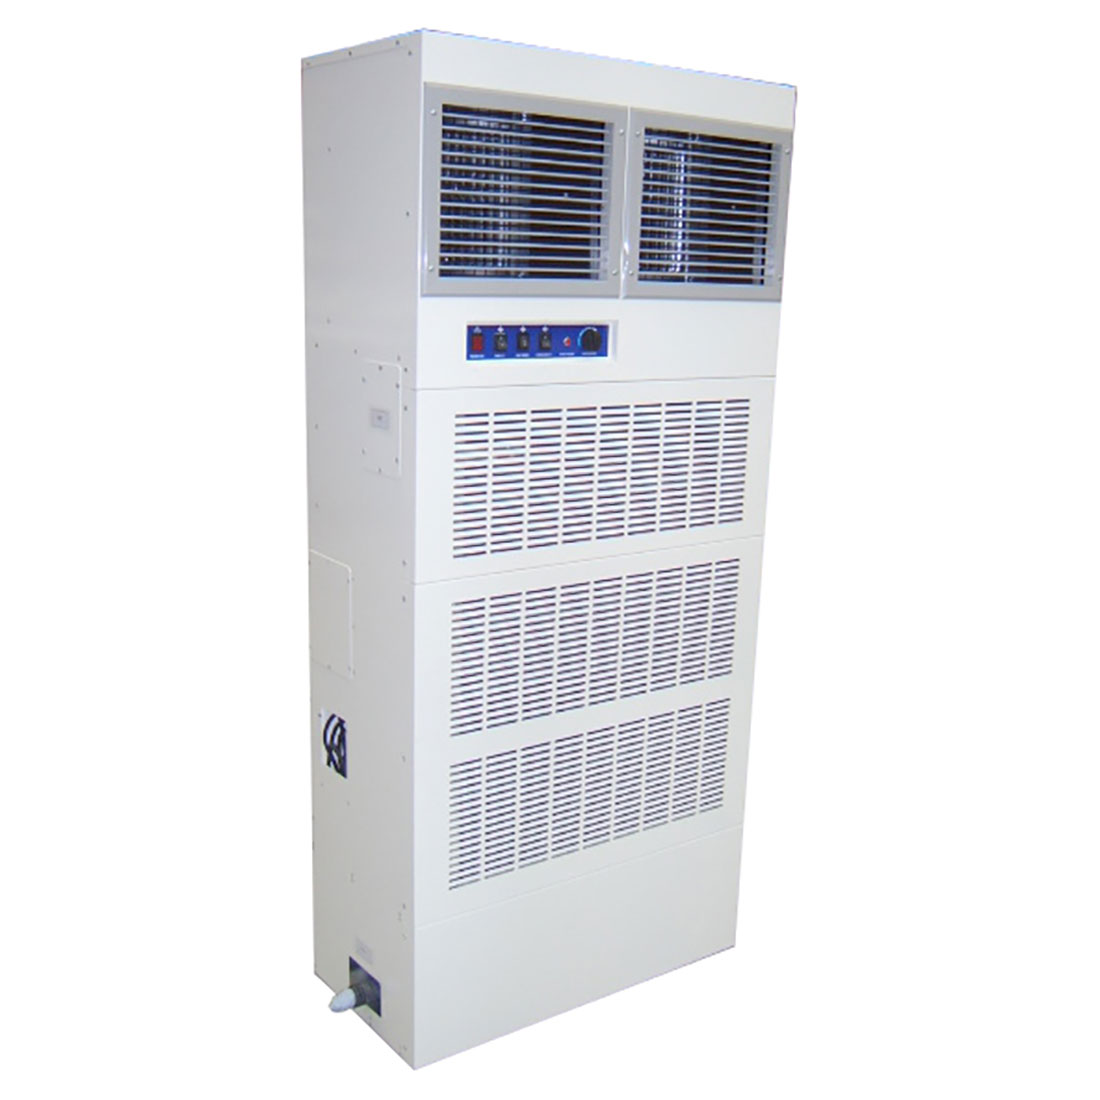 50/100kW Air handler (Small Footprint)